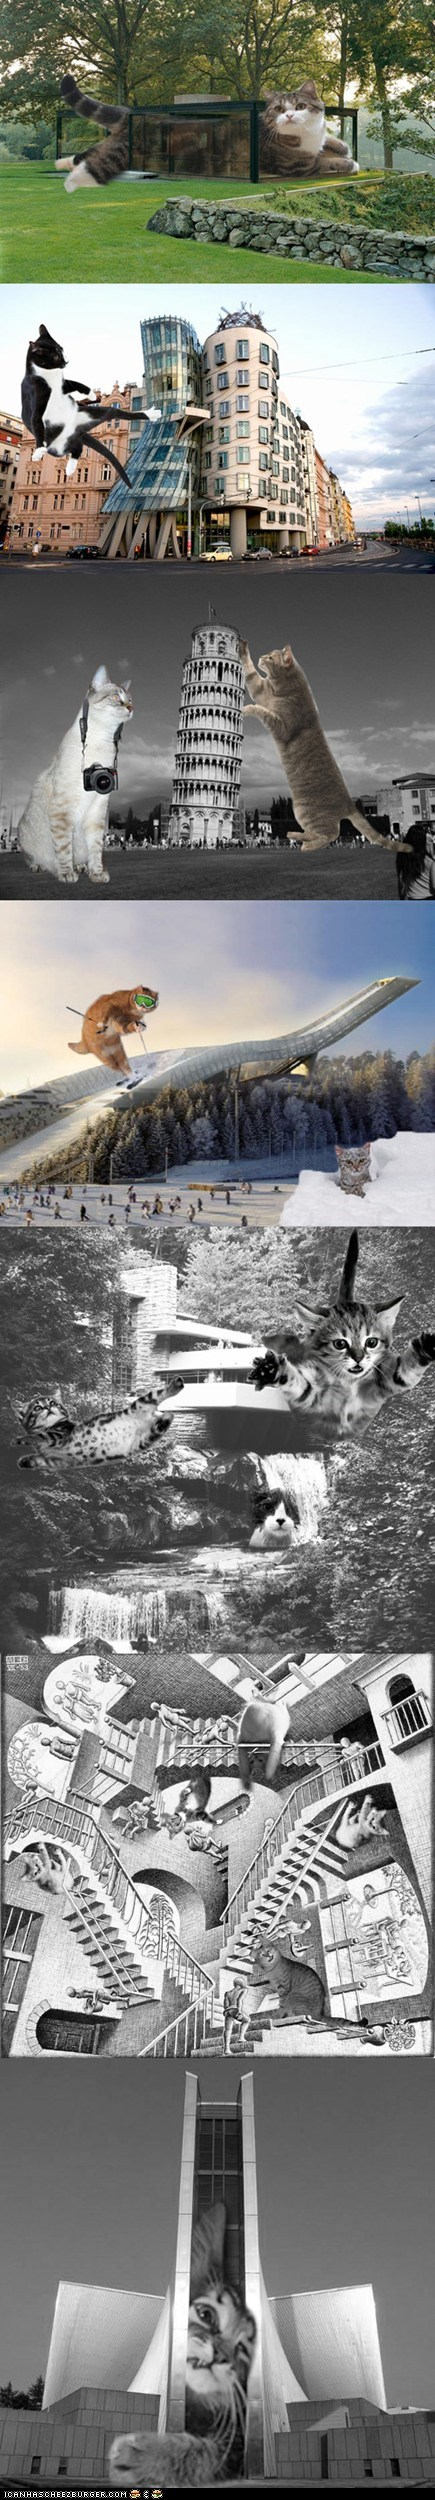 Furrocious Forms: LOLcats Descend on the World's Most Famous Architecture